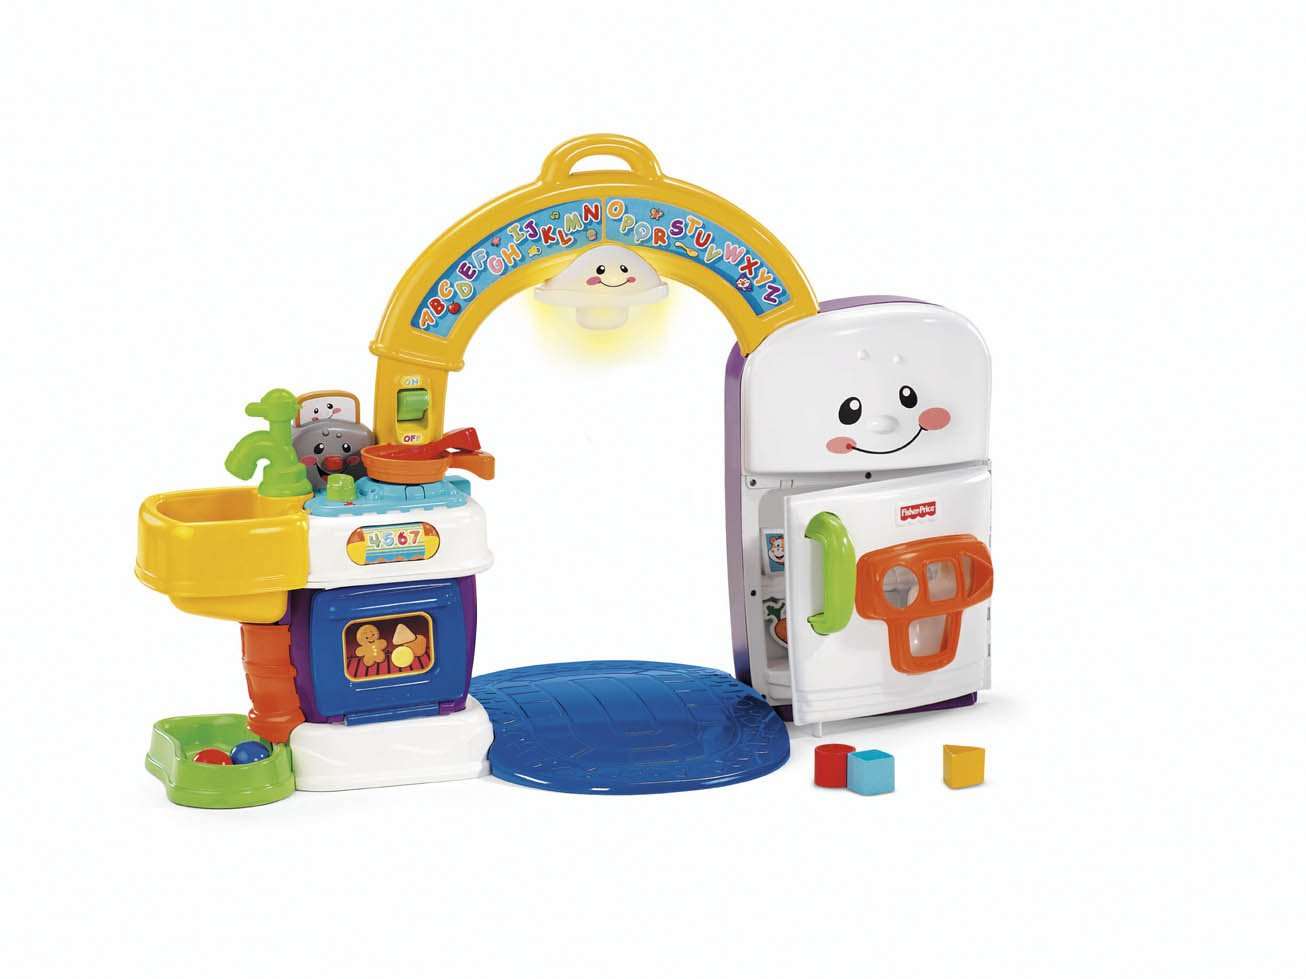 Amazon.com: Fisher Price Laugh and Learn 2-in-1 Learning Kitchen ...